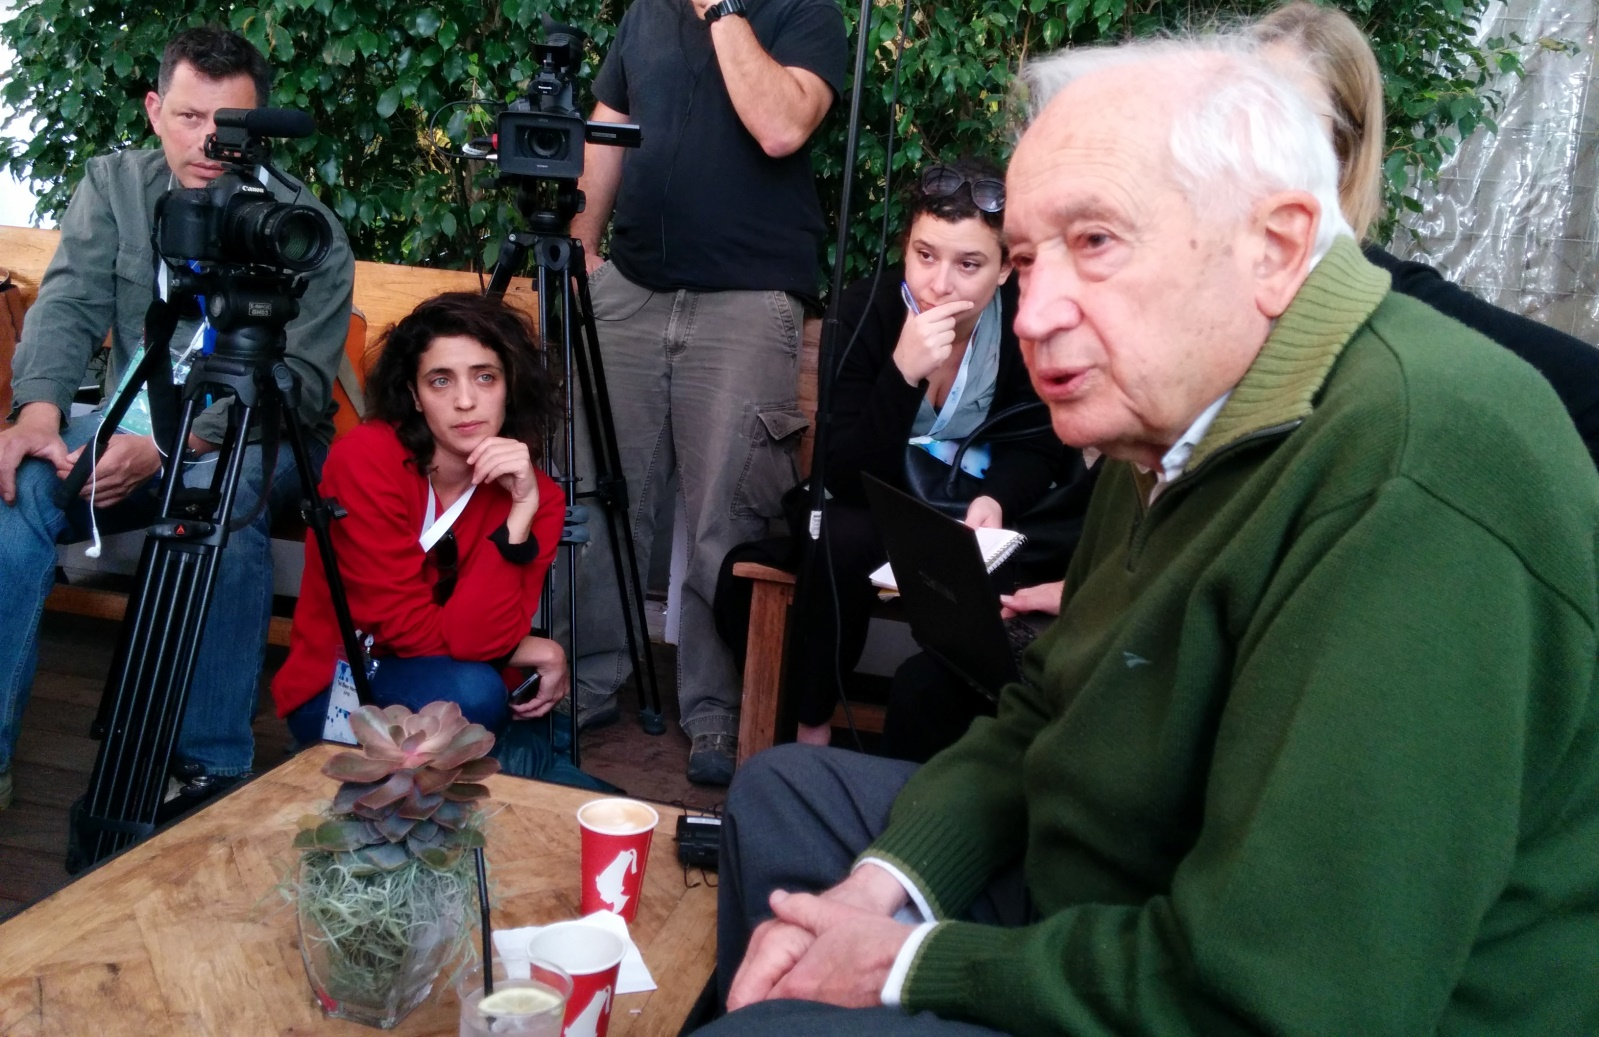 Prof. Raphael Mechoulam, right, a worldwide authority on medical cannabis, speaks to the press at Canna Tech 2016. Photo by Viva Sarah Press